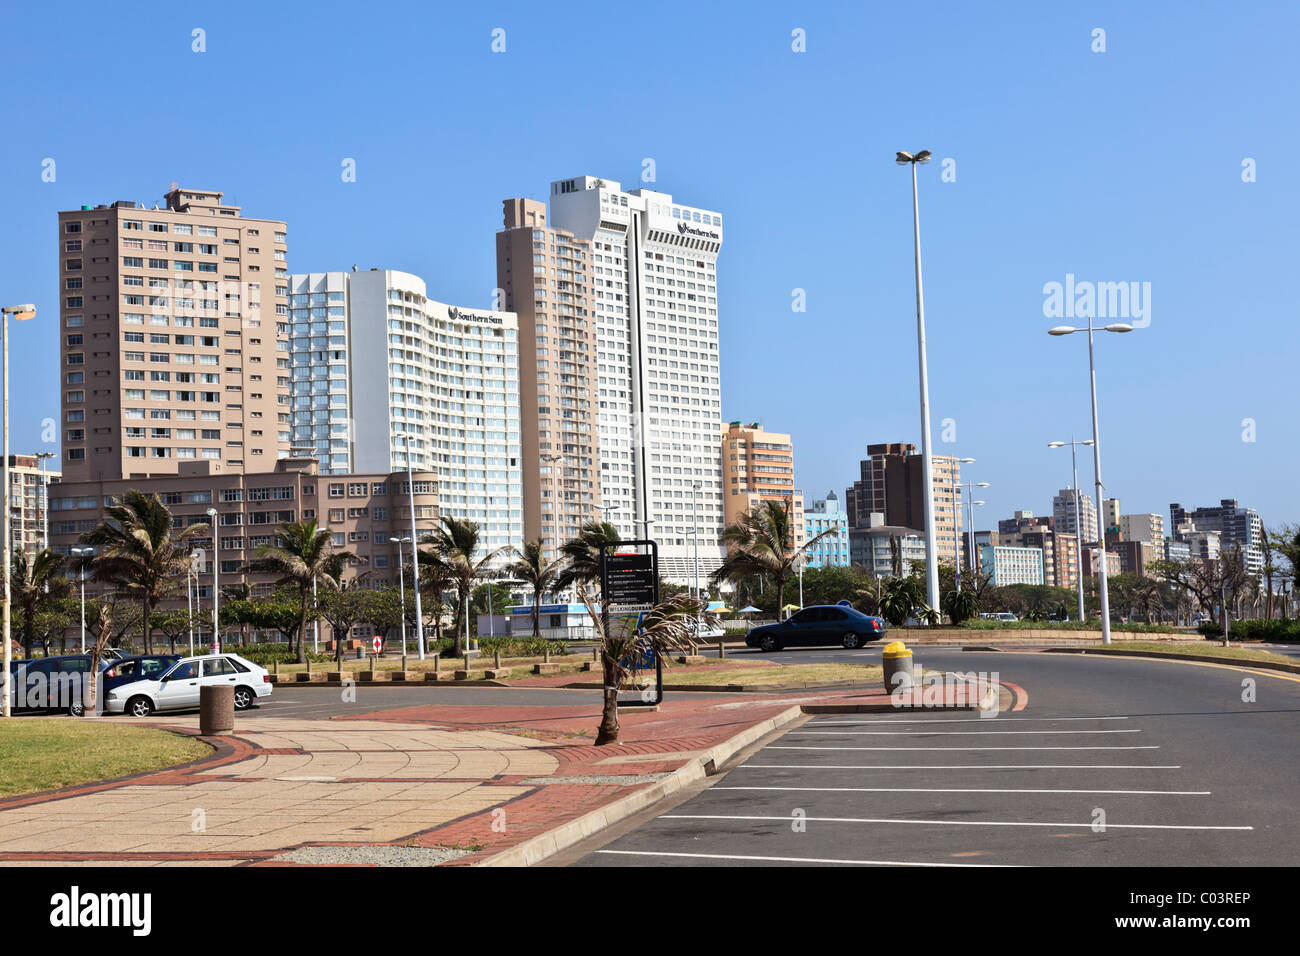 Hotels on Durban's golden mile a popular tourist destination in South Africa - Stock Image